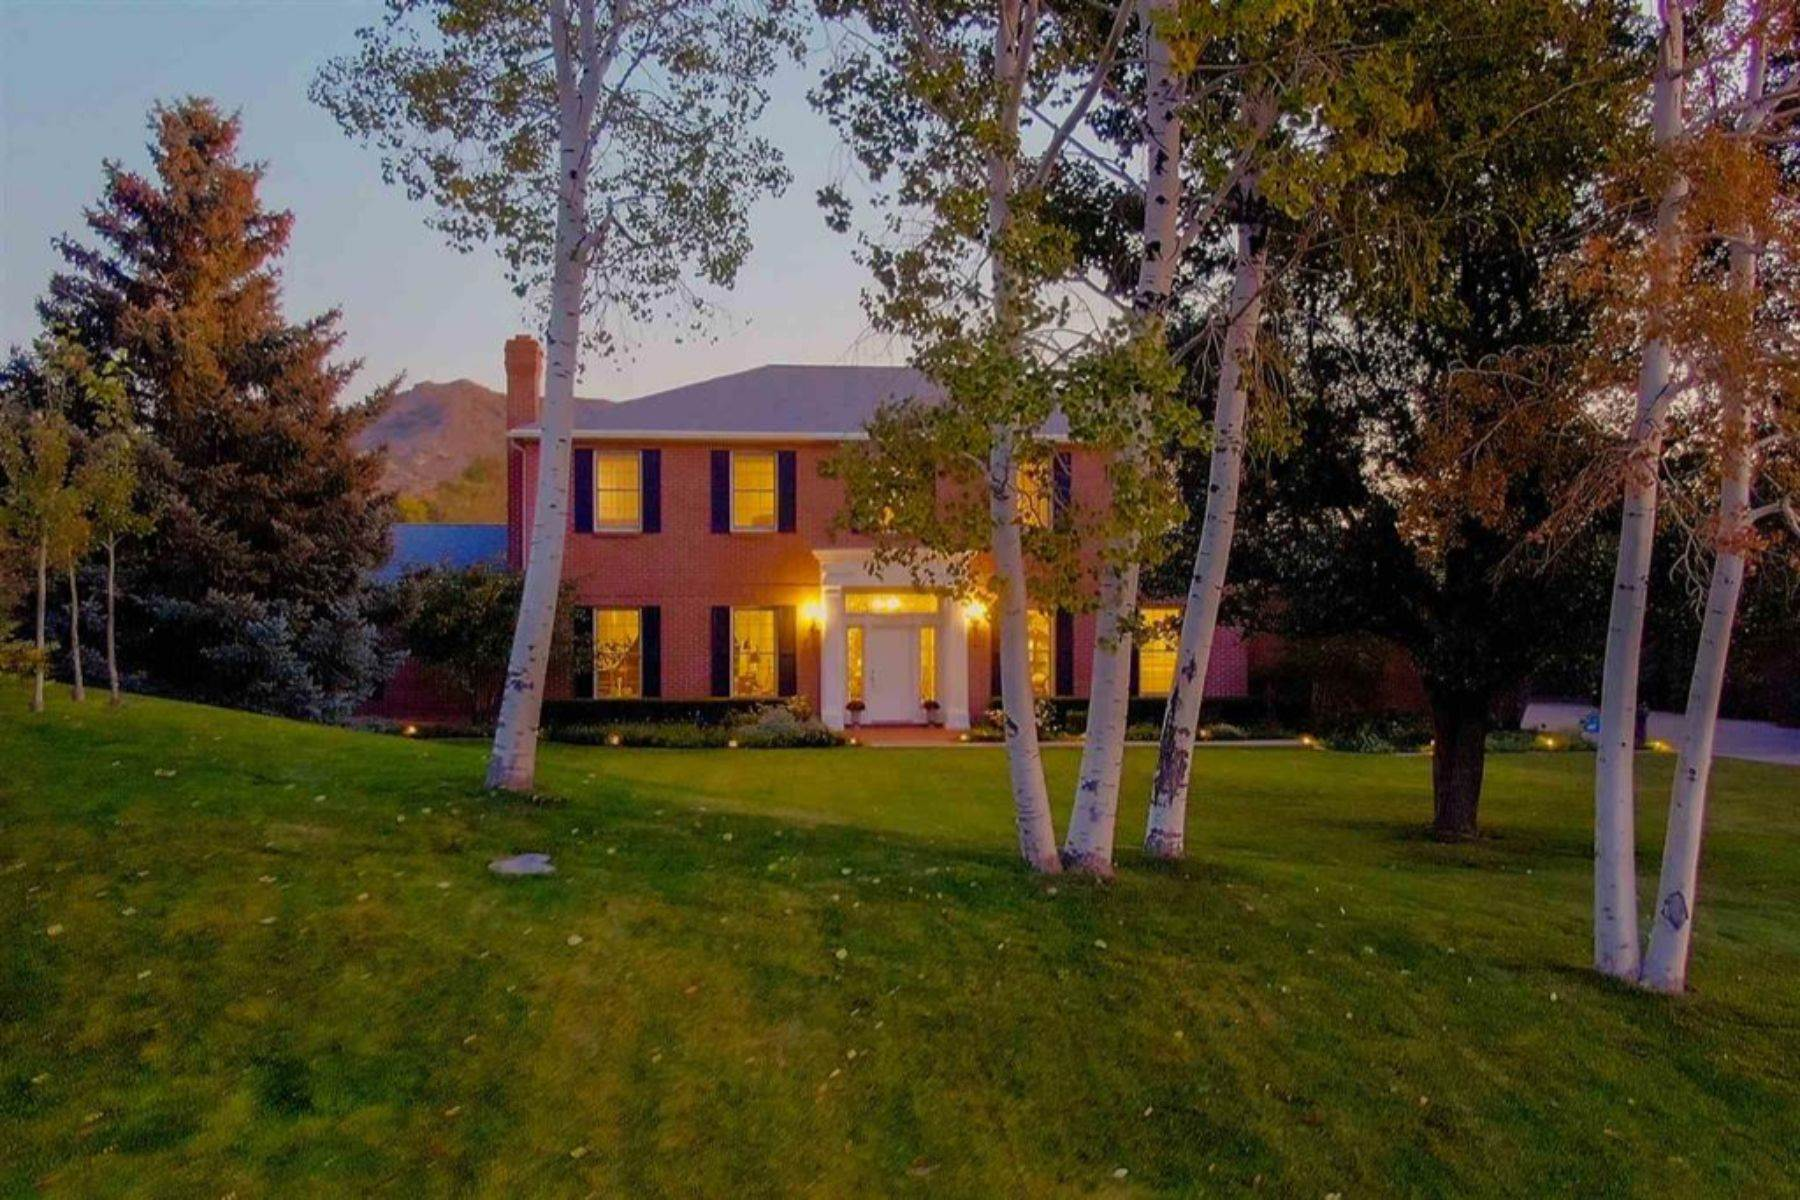 Sophisticated quality! Classic elegance in impressive custom-built brick home & gardens in Albuquerque foothills—perfect for comfortable living and entertaining inside & out. Views of Sandia & Manzano Mountains. Two huge living areas, one on each floor. Separate dining room. Master suite on first floor. Stunning architectural setting for all styles! Exceptional, one-of-a-kind details: 9'' crown mouldings, antique working fireplaces in formal LR & DR. 10' ceilings on 1st floor. Hardwood floors throughout. French antiques in kitchen cabinetry. Lovely gardens designed by landscape designer Bill Hays: 65' patio consisting of 2 Italian pergolas with parterre garden & fountain. Just like walking into Architectural Digest! Completely remodeled in 2015. Everything like new & meticulously maintained.